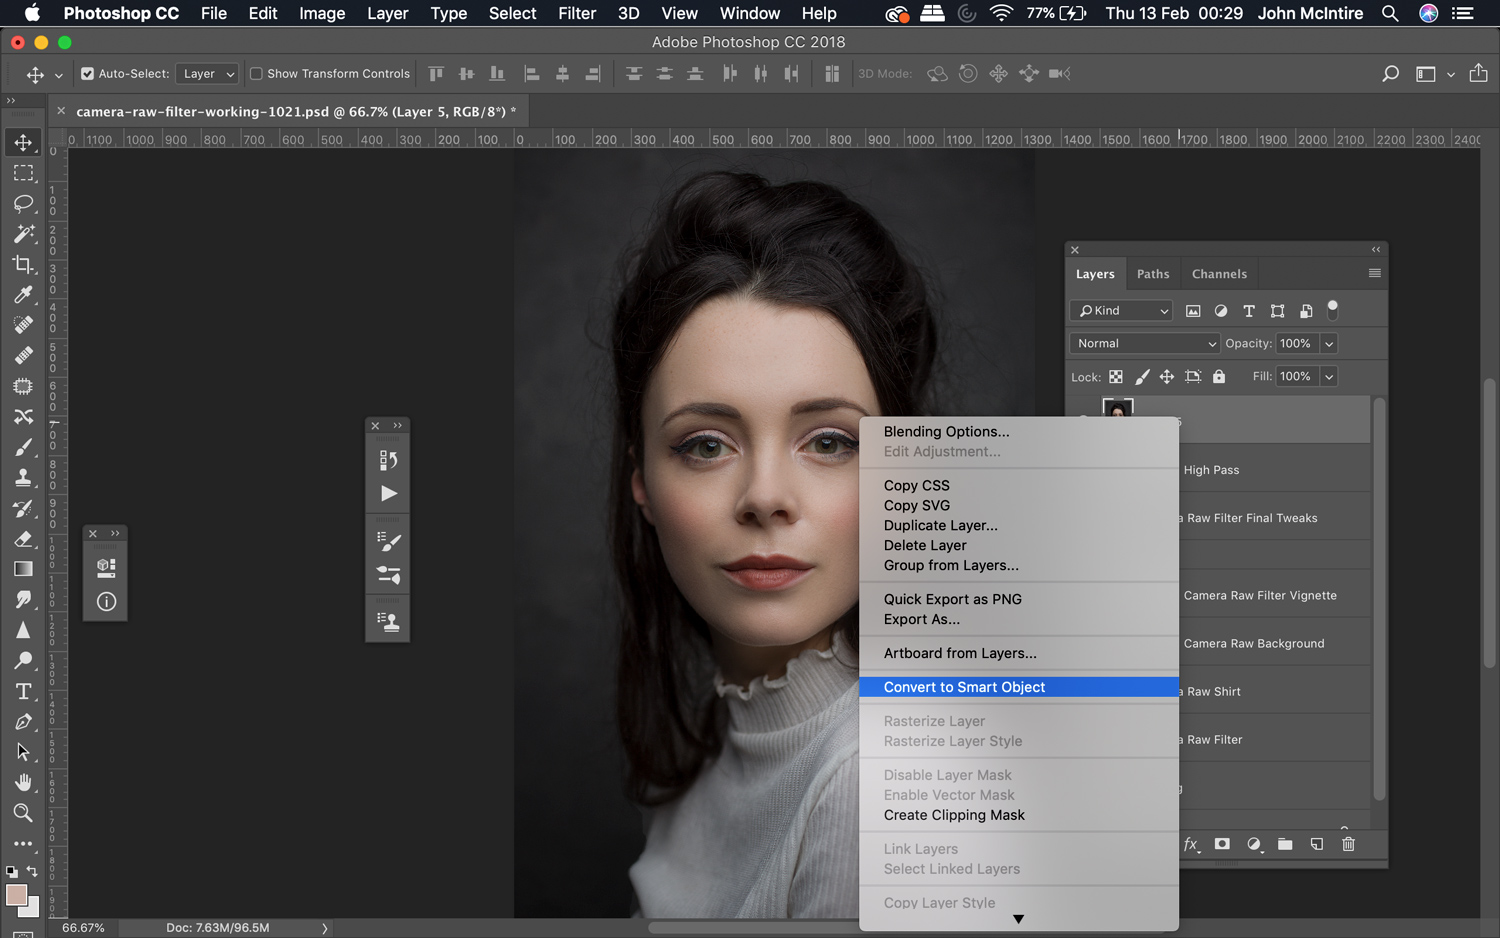 Using the Photoshop Camera Raw Filter as a Smart Object.